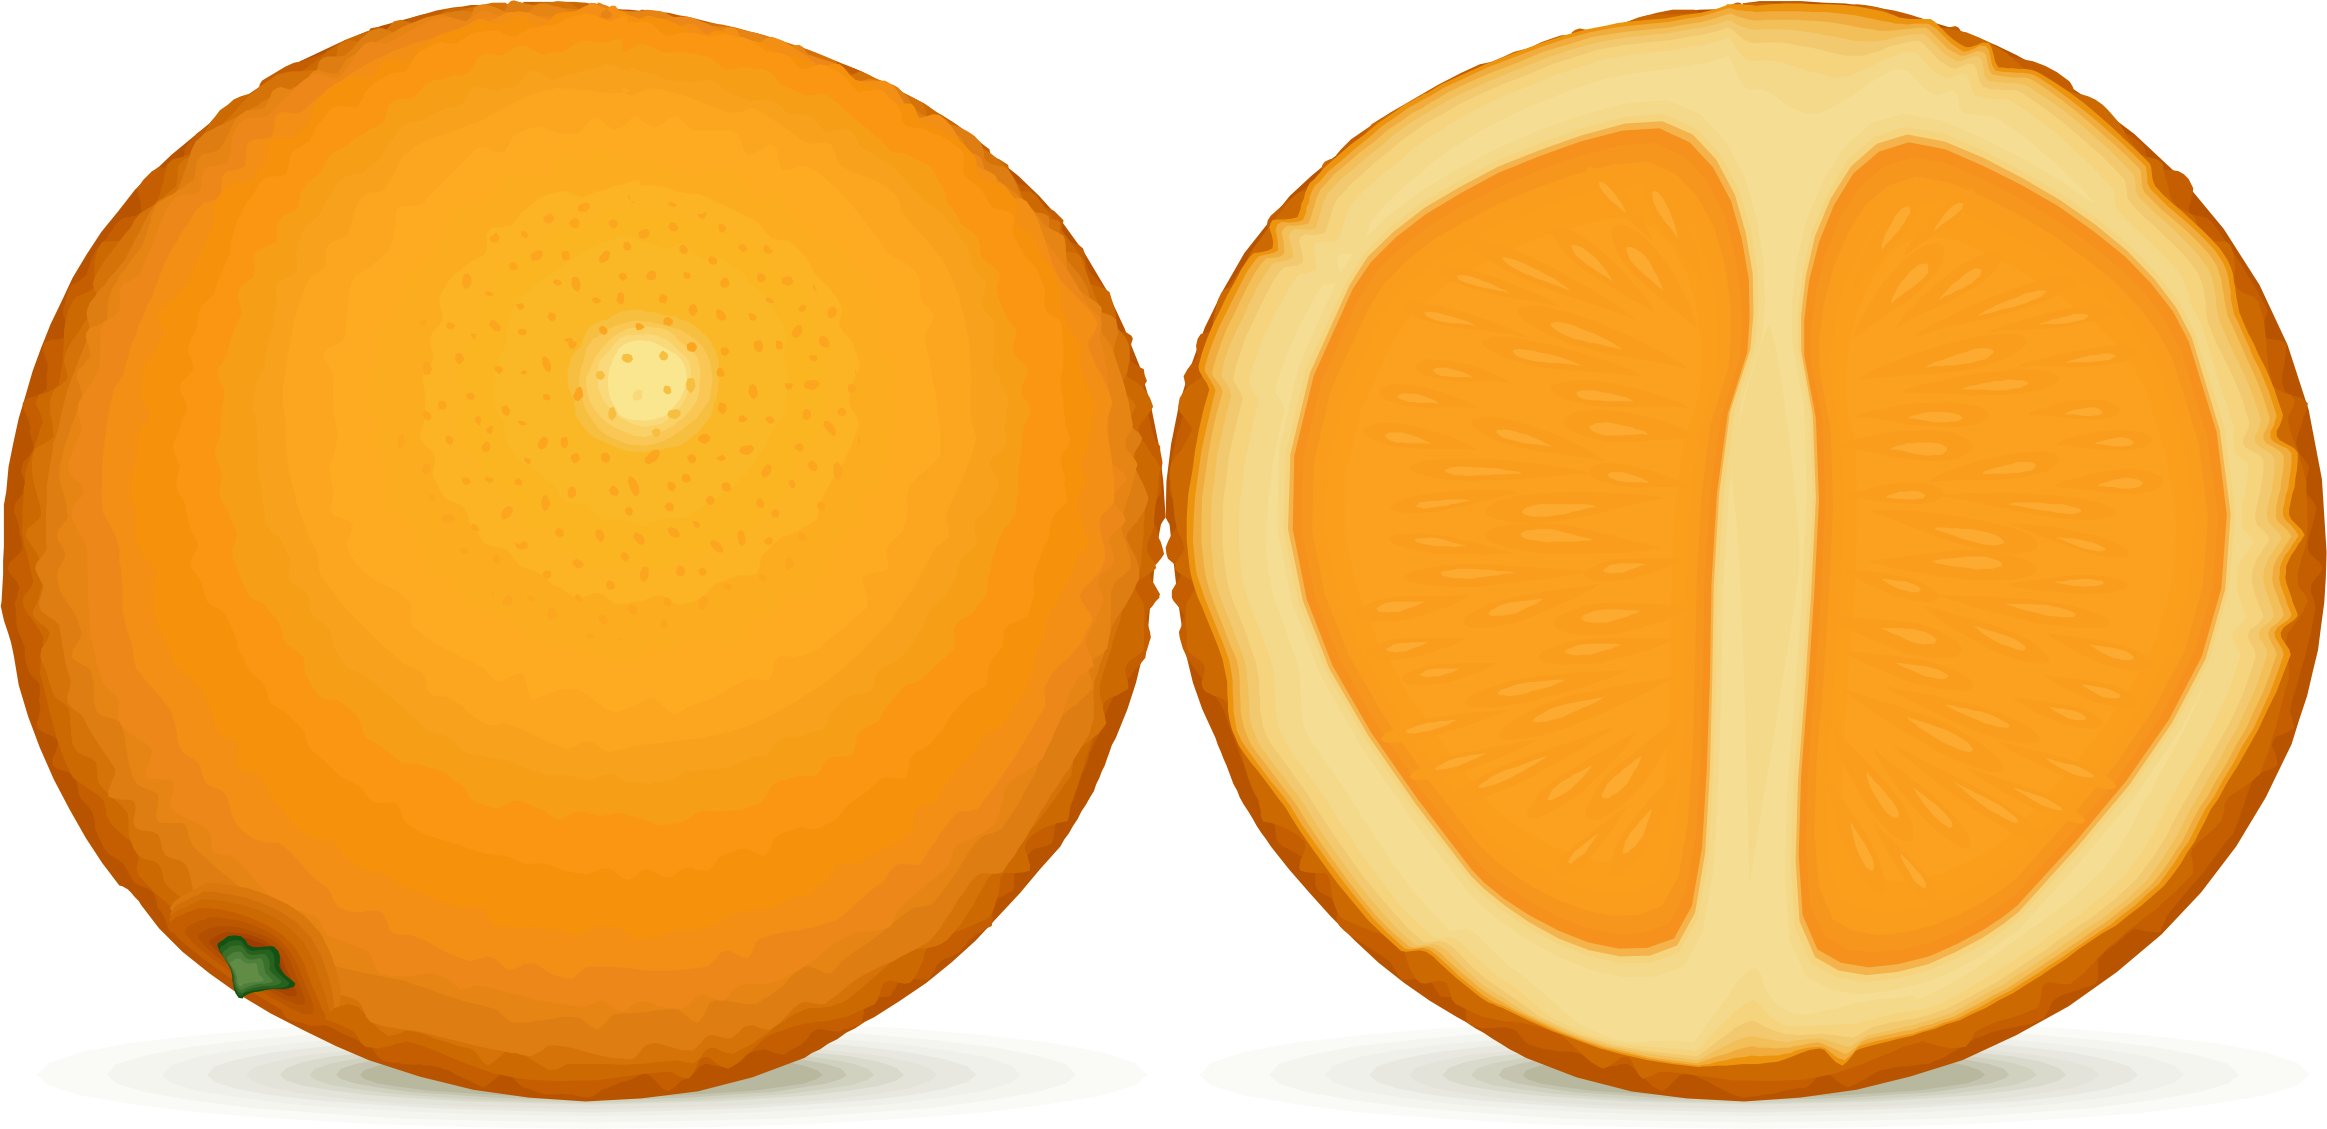 Animated orange